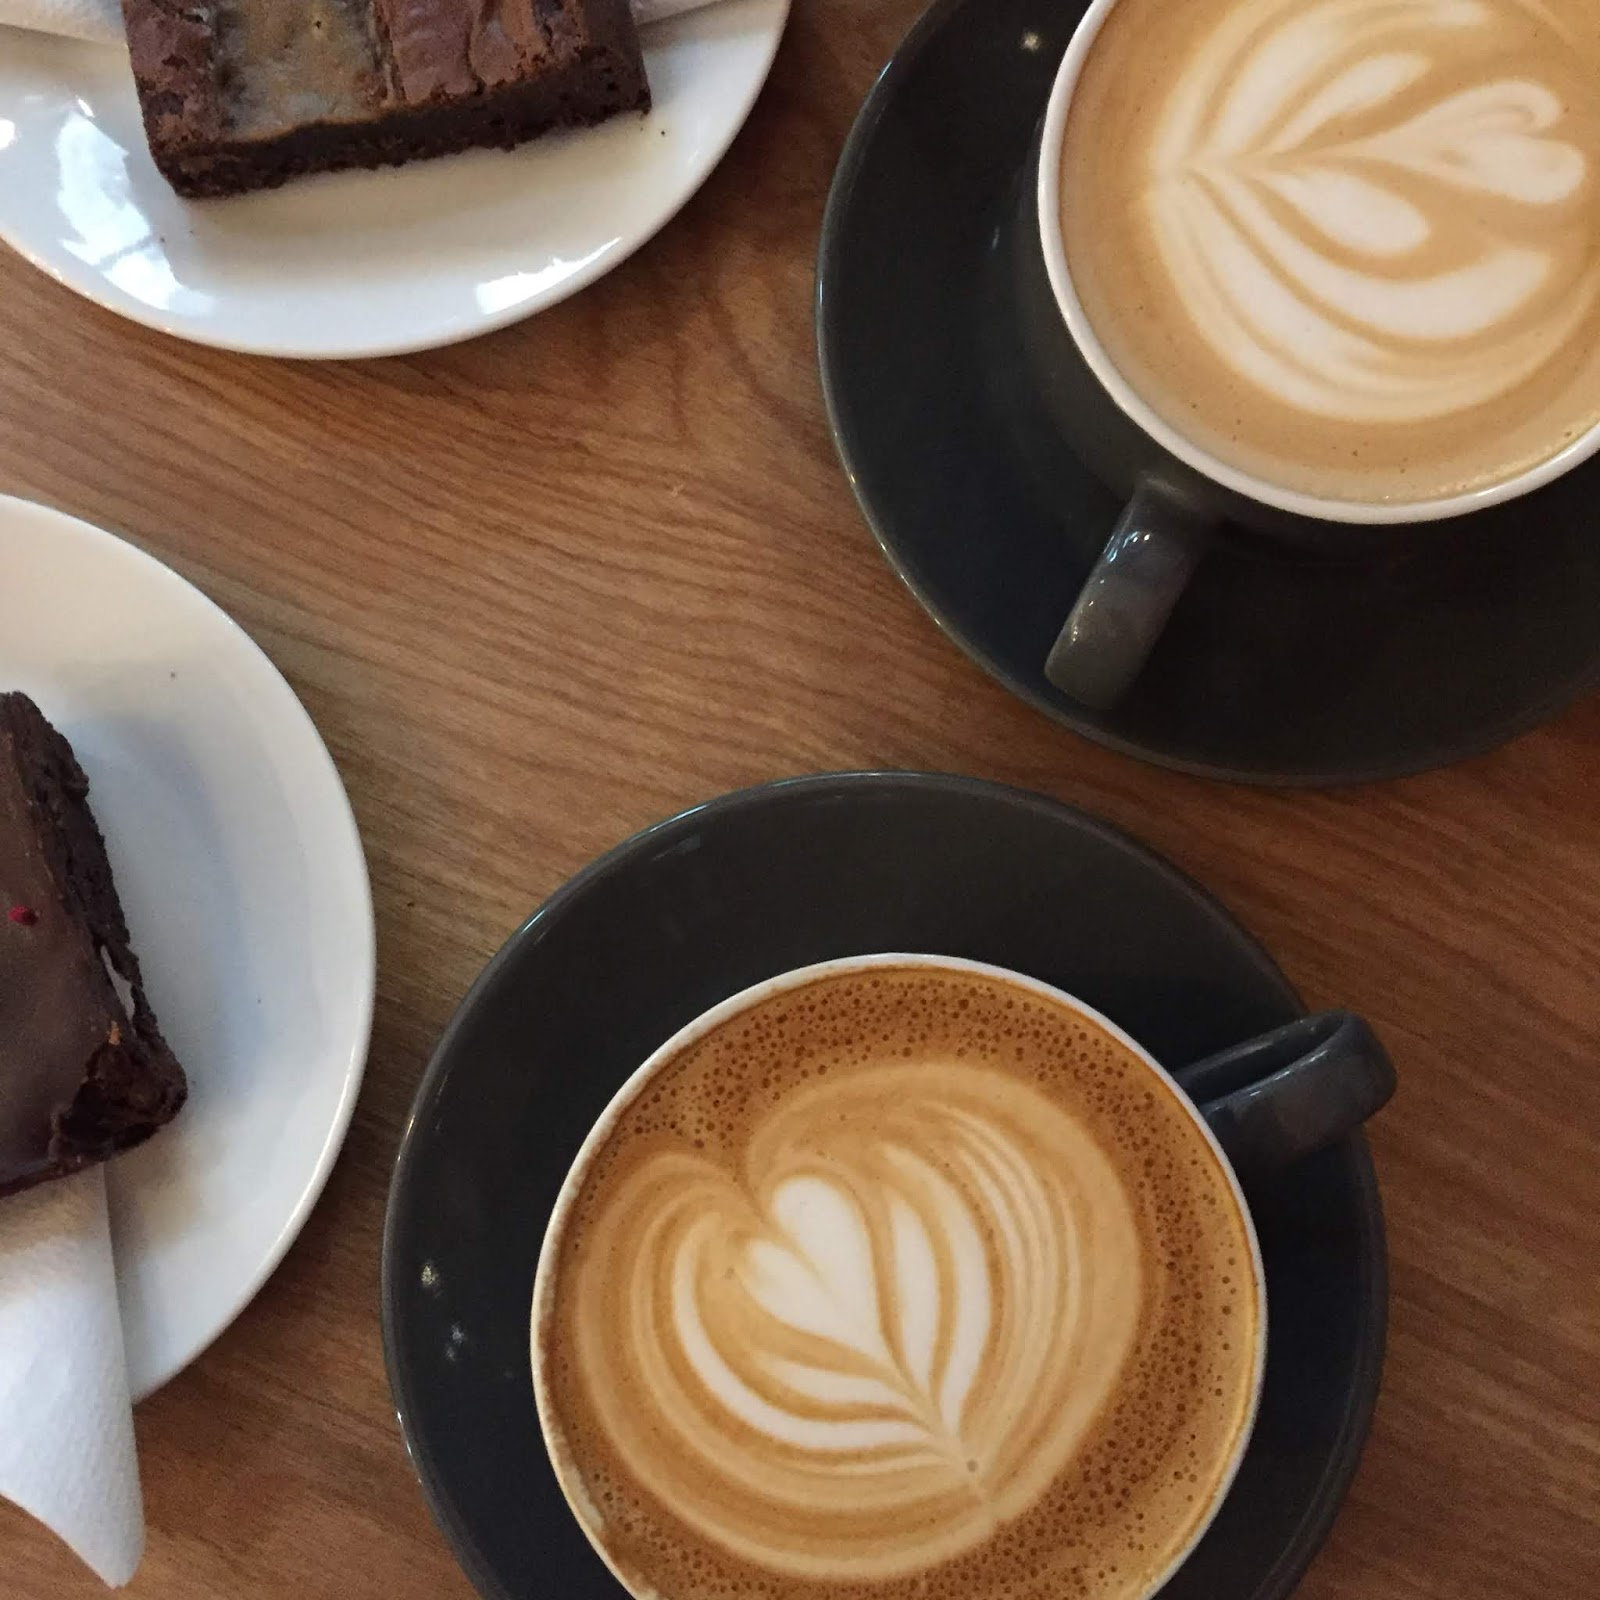 two lattes and brownies on table